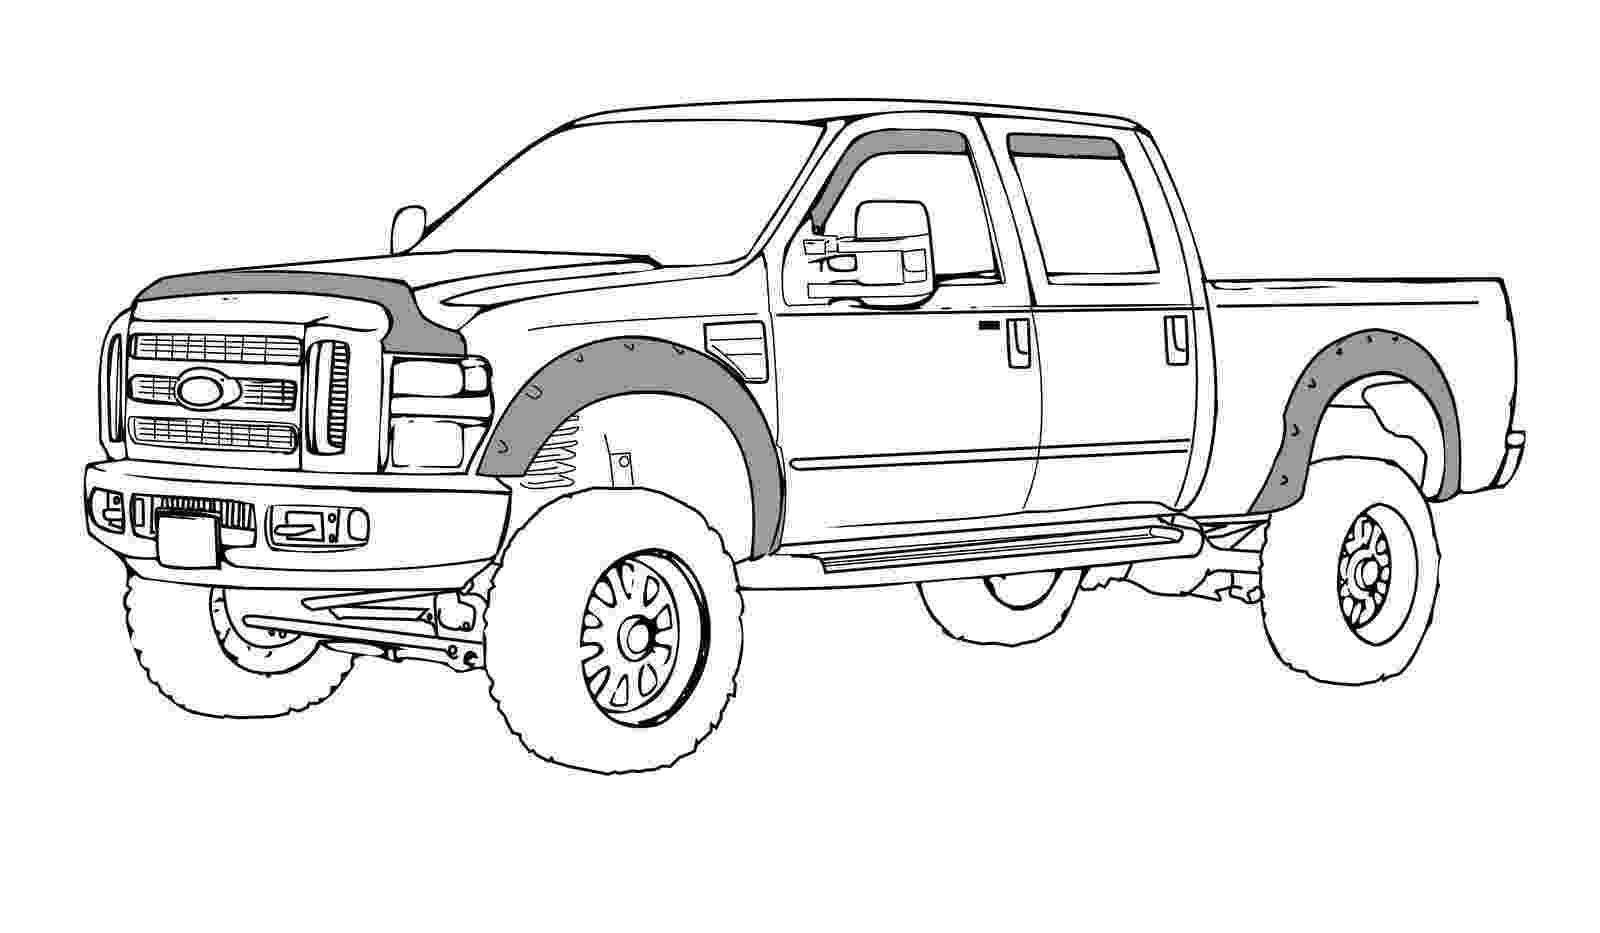 coloring pictures of cars and trucks free printable fire truck coloring pages for kids pictures of and trucks coloring cars